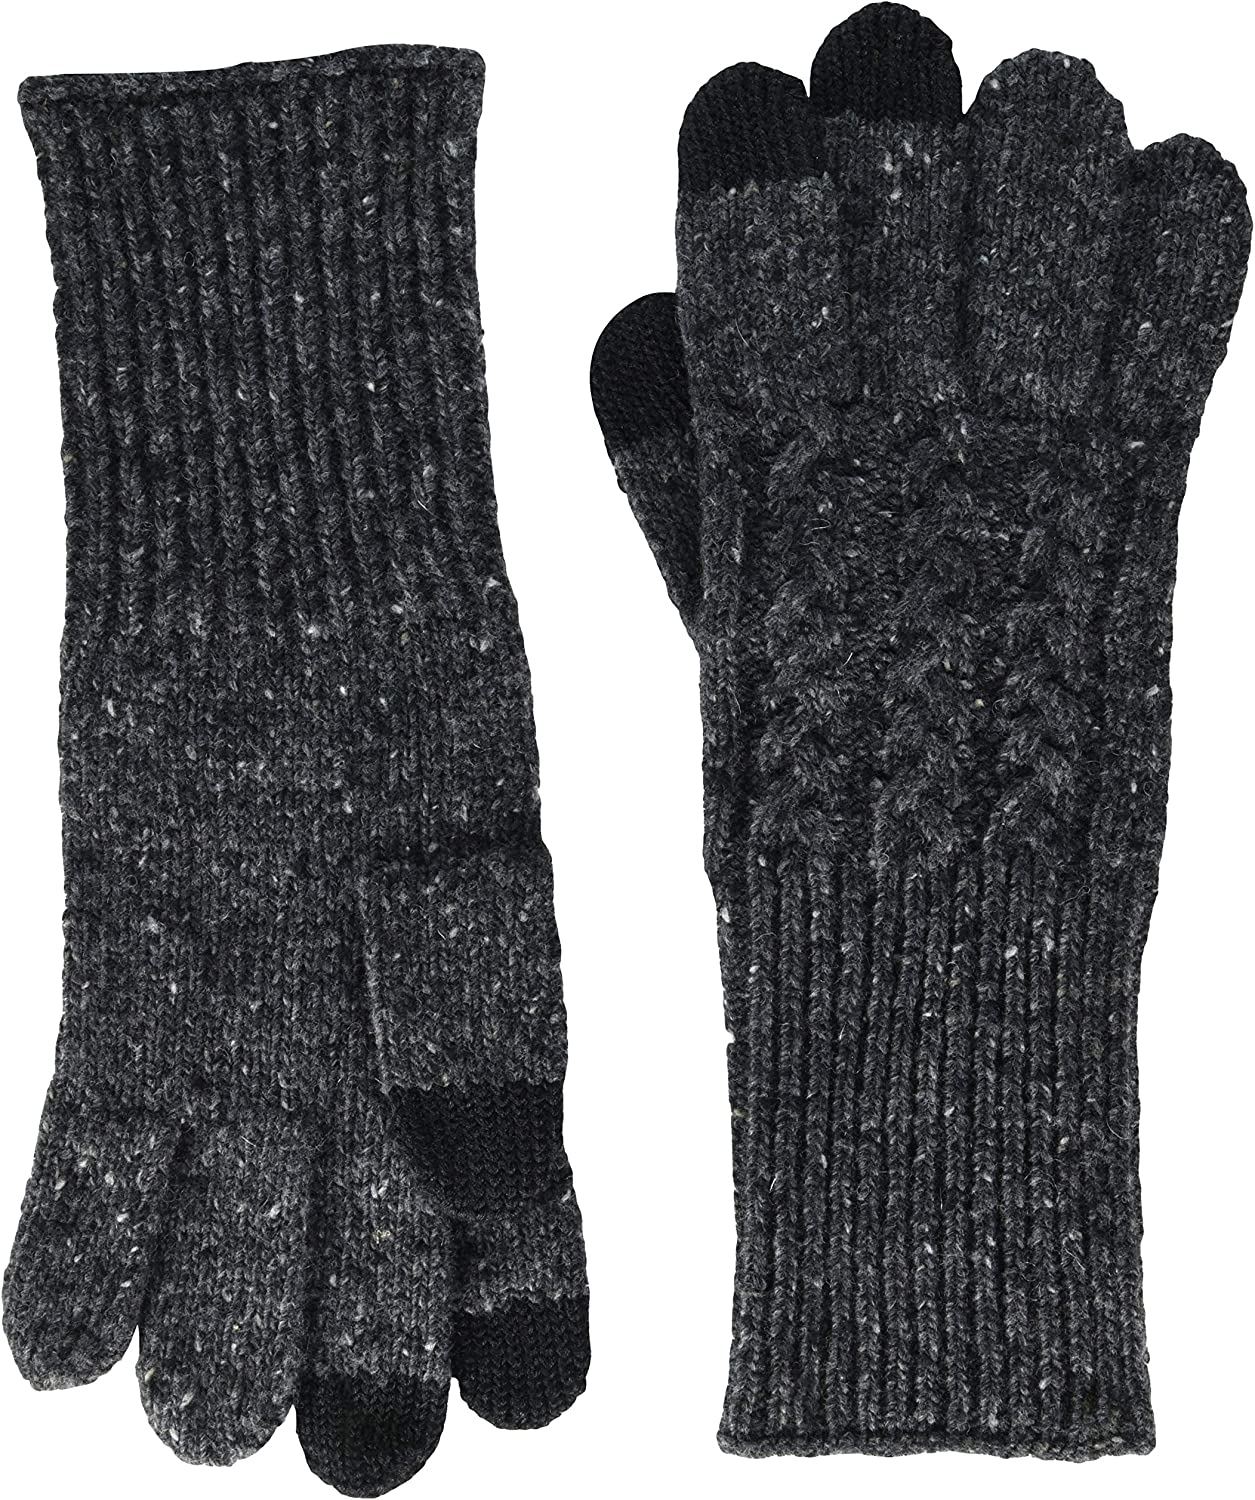 Pendleton womens Gloves Latest item Max 53% OFF Cable